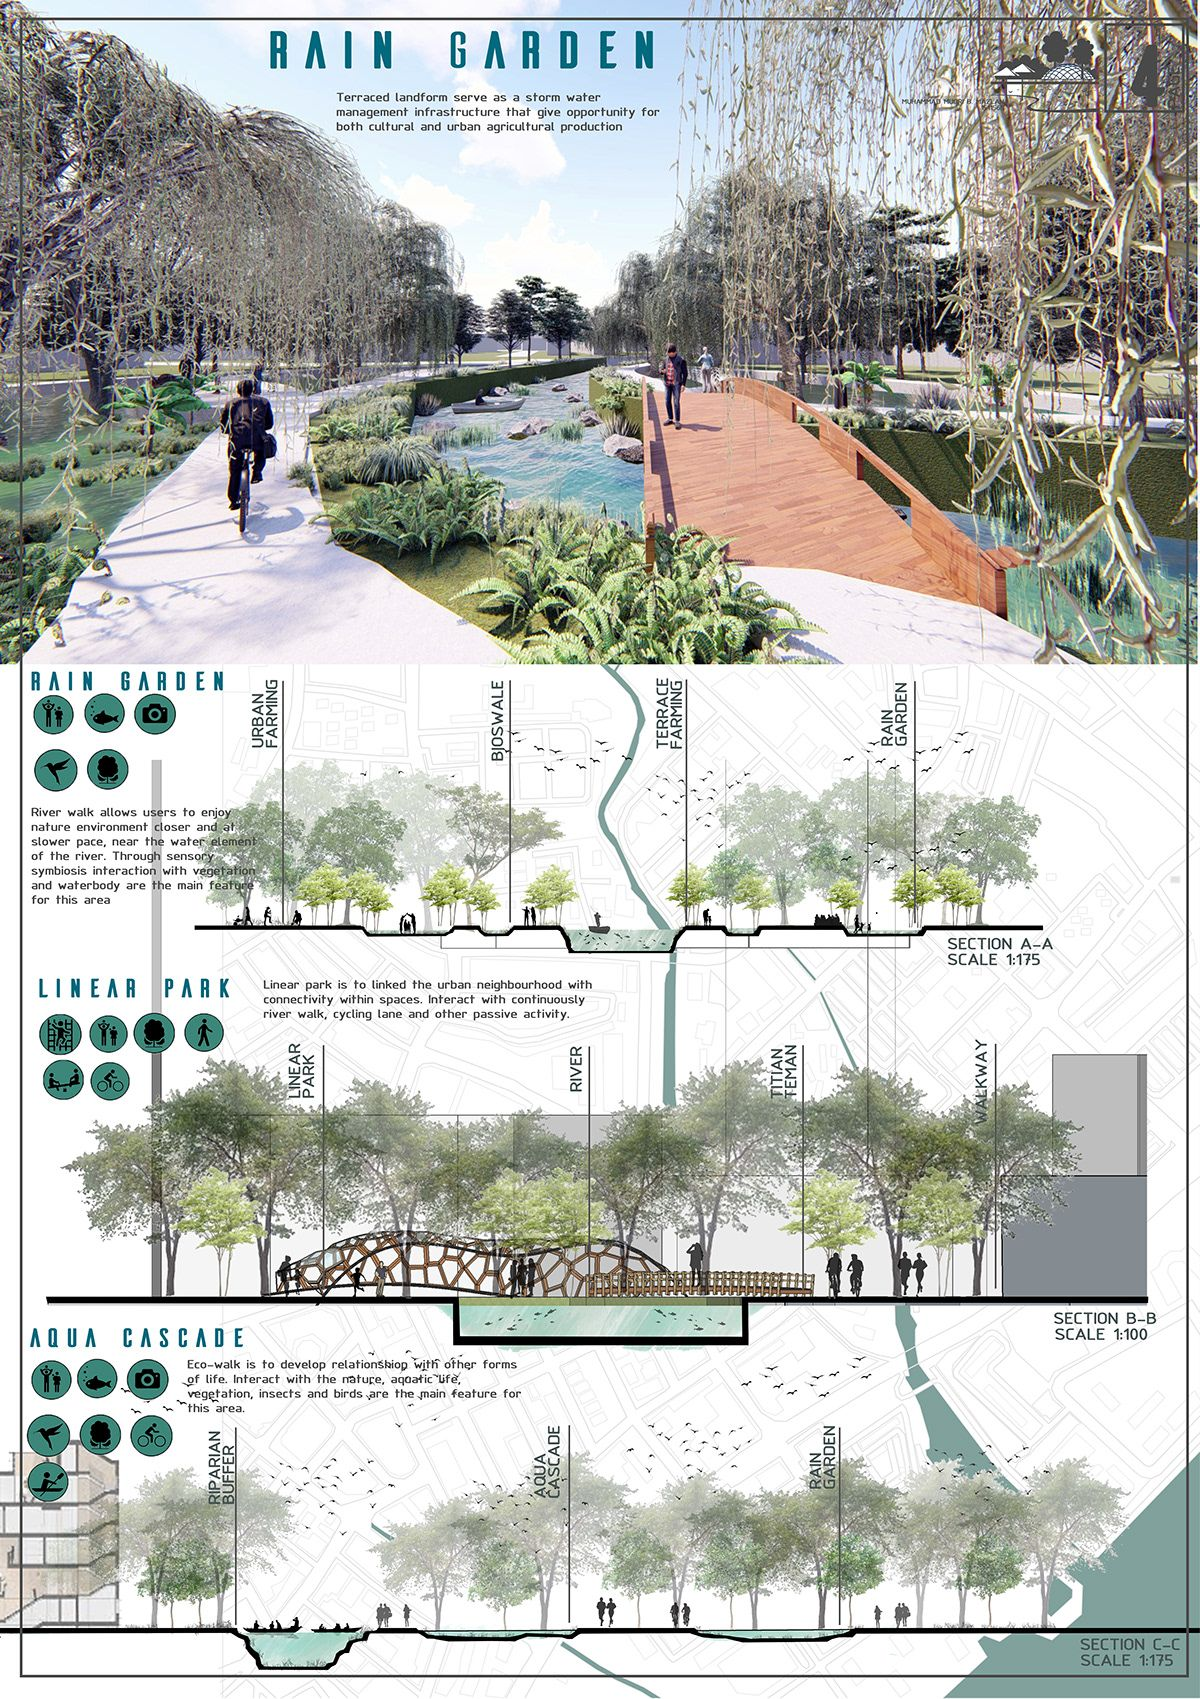 Final Project Landscape Architecture Studio on Behance